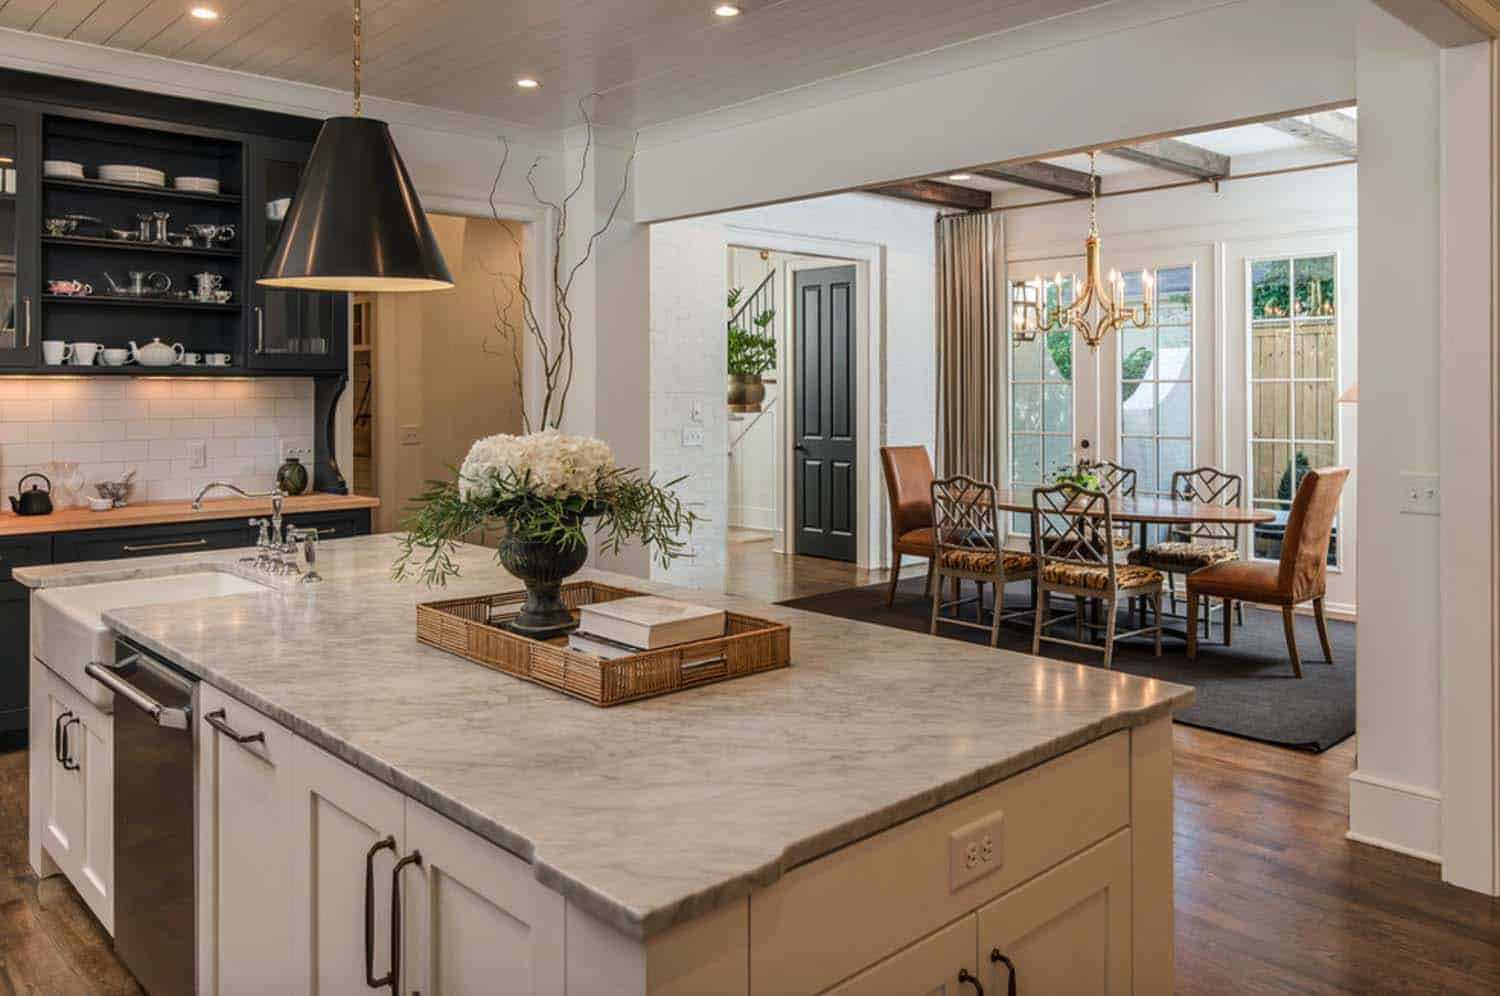 Cape dutch style home in tennessee opens to stylish interiors for Dutch style homes